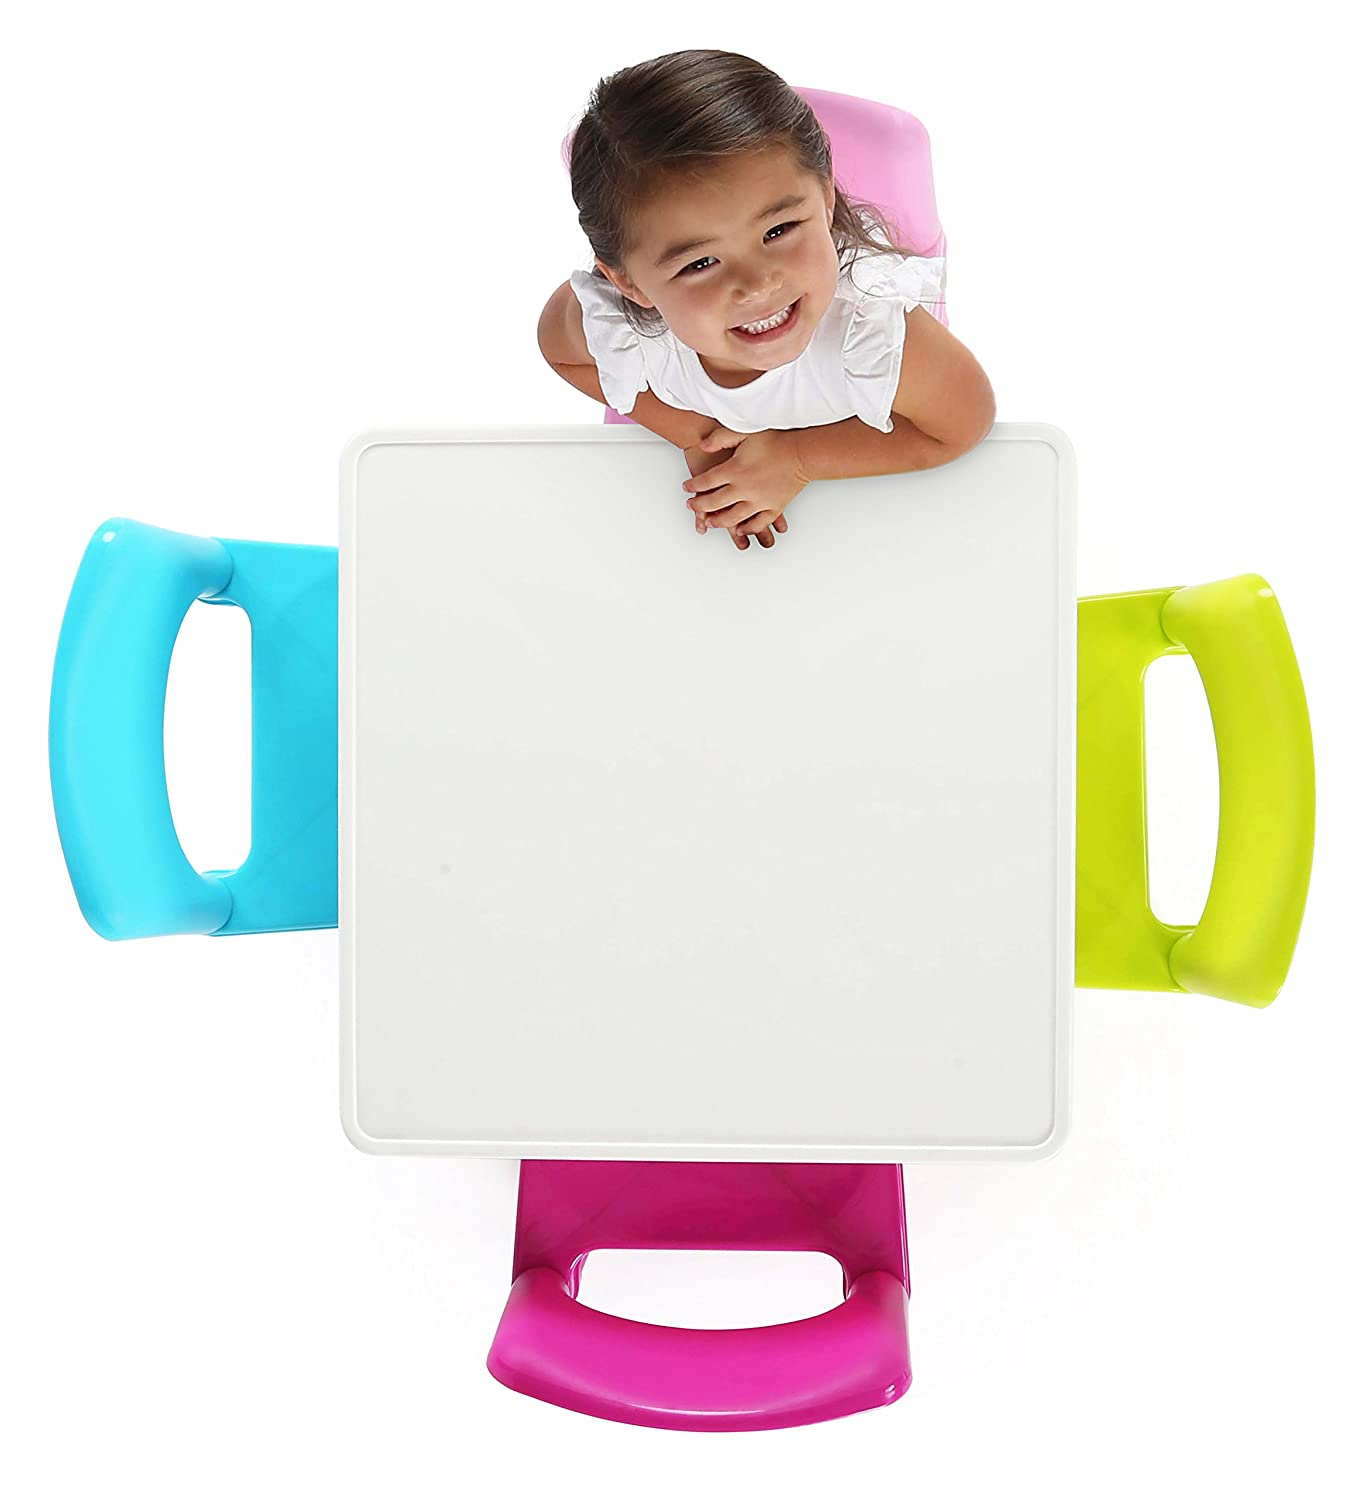 kids table chairs play set toddler child toy activity furniture indoor outdoor ebay. Black Bedroom Furniture Sets. Home Design Ideas